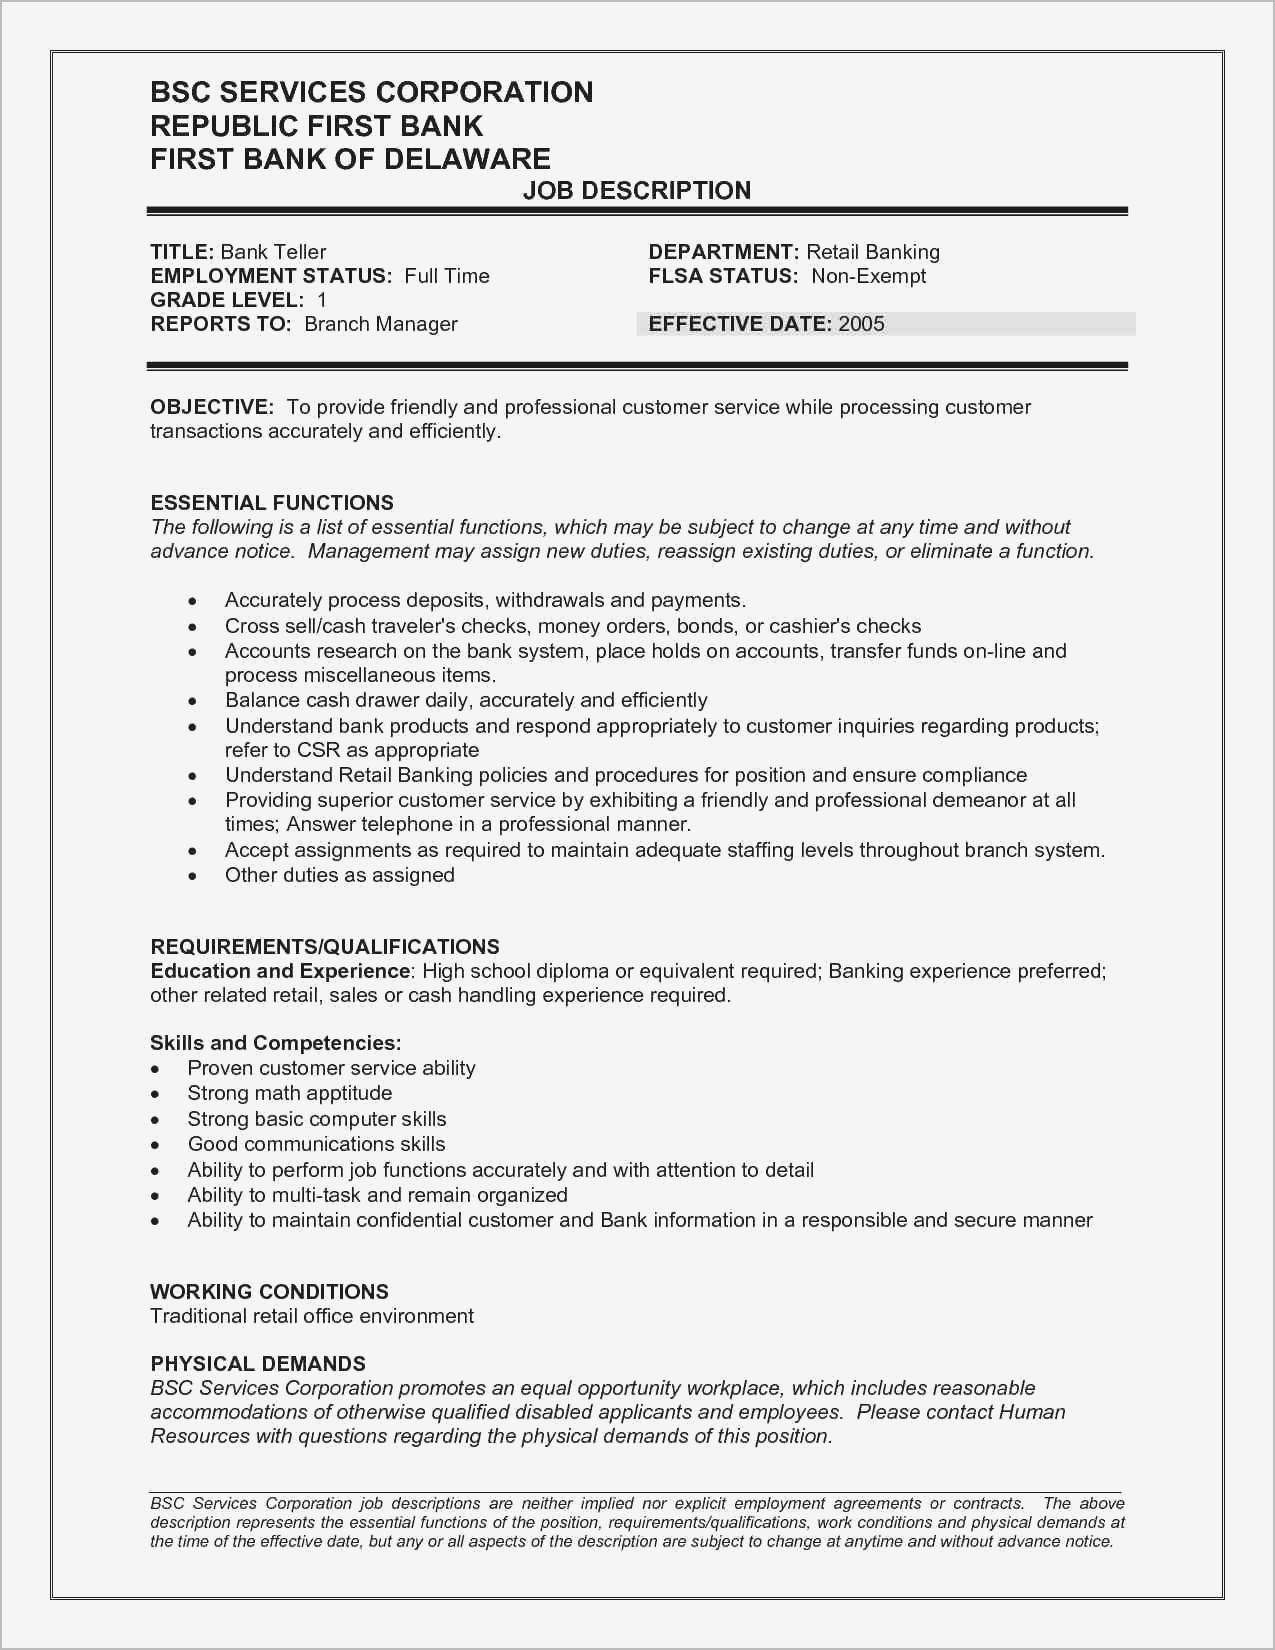 Contract Manager Resume Sample - Basic Resume Examples for Retail Jobs Resume Resume Examples